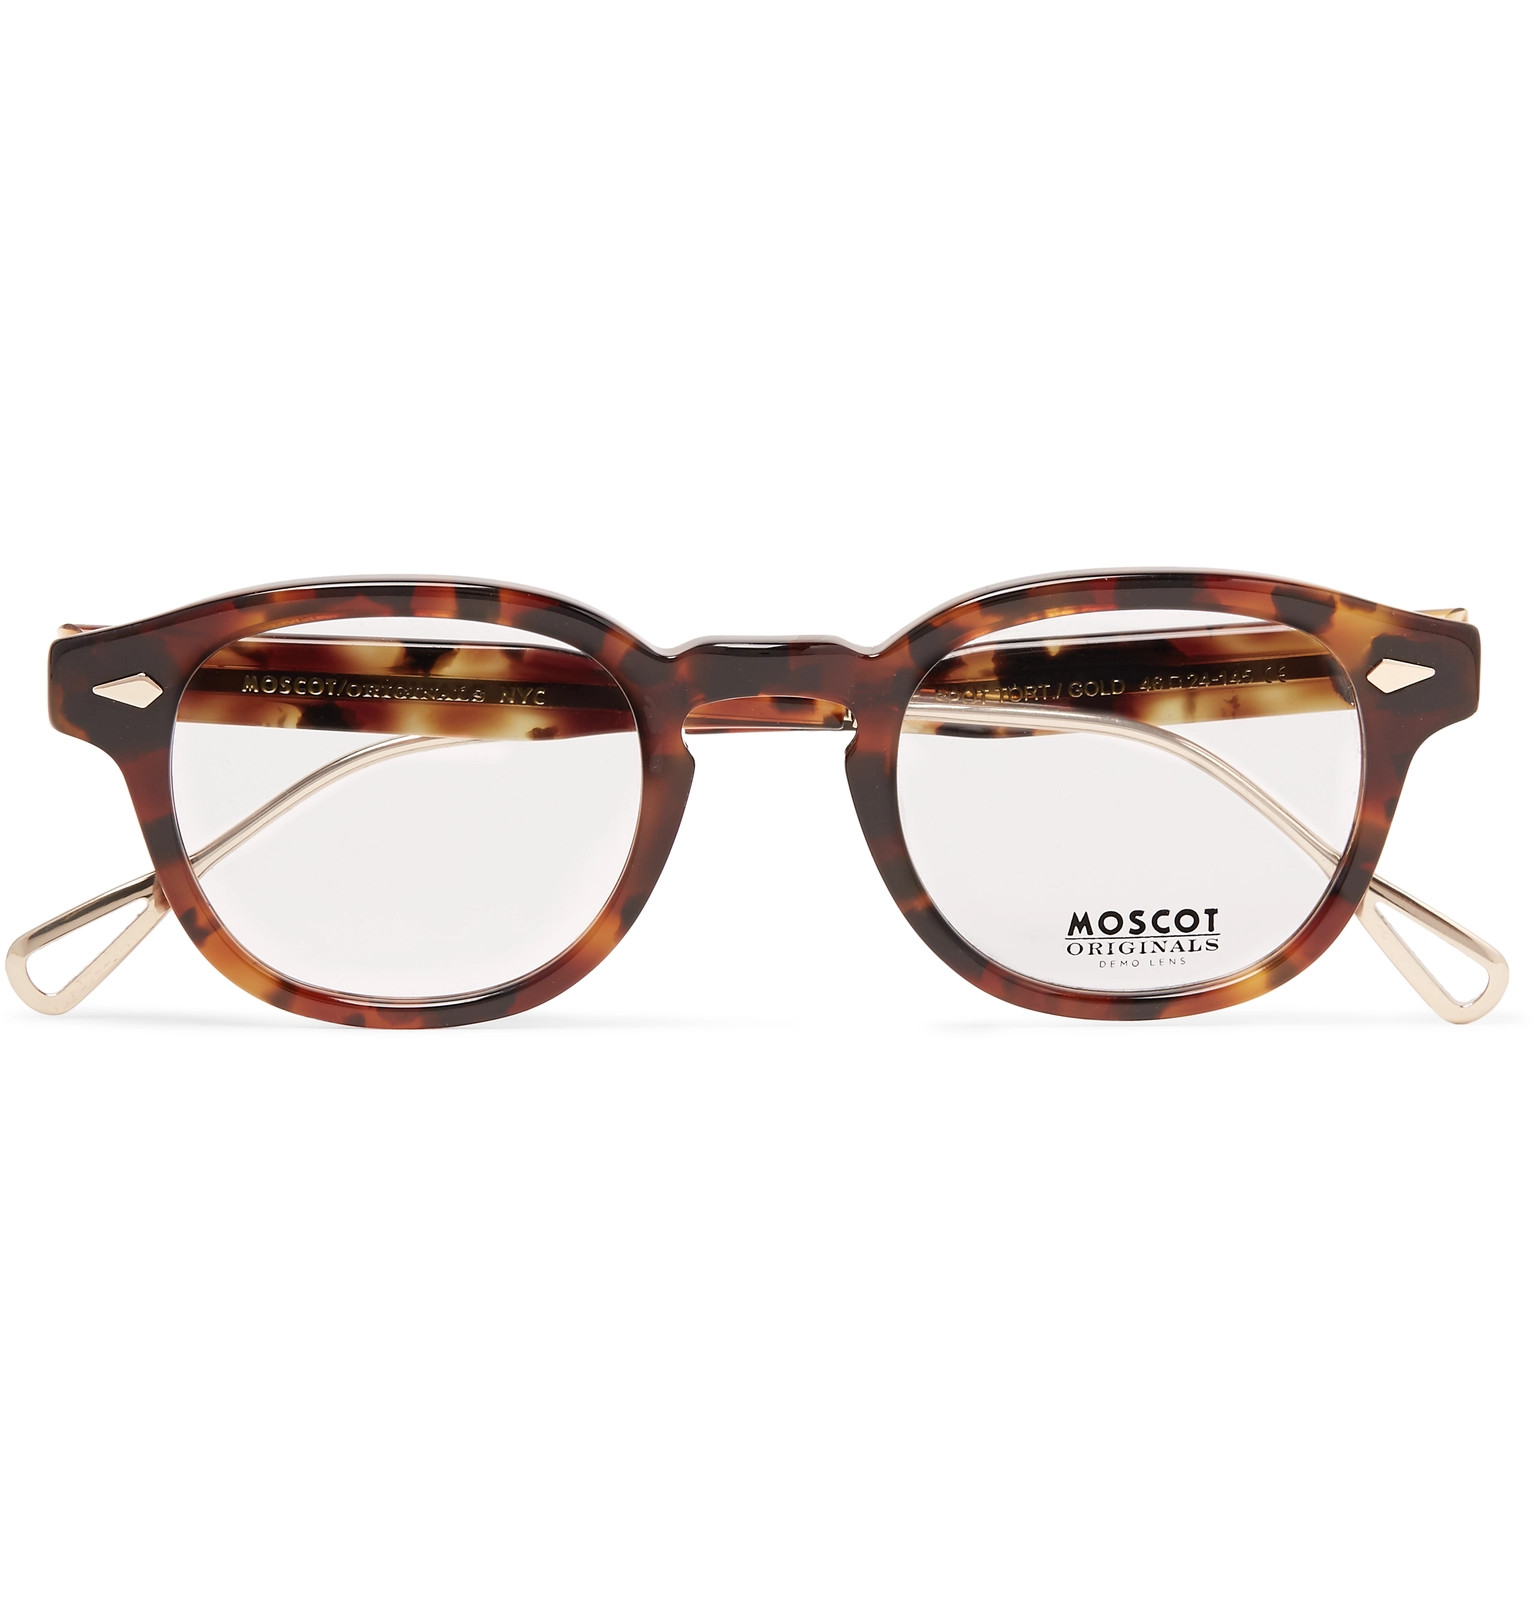 99c85f673ca MoscotLemtosh Round-Frame Tortoiseshell Acetate and Gold-Tone Titanium  Optical Glasses